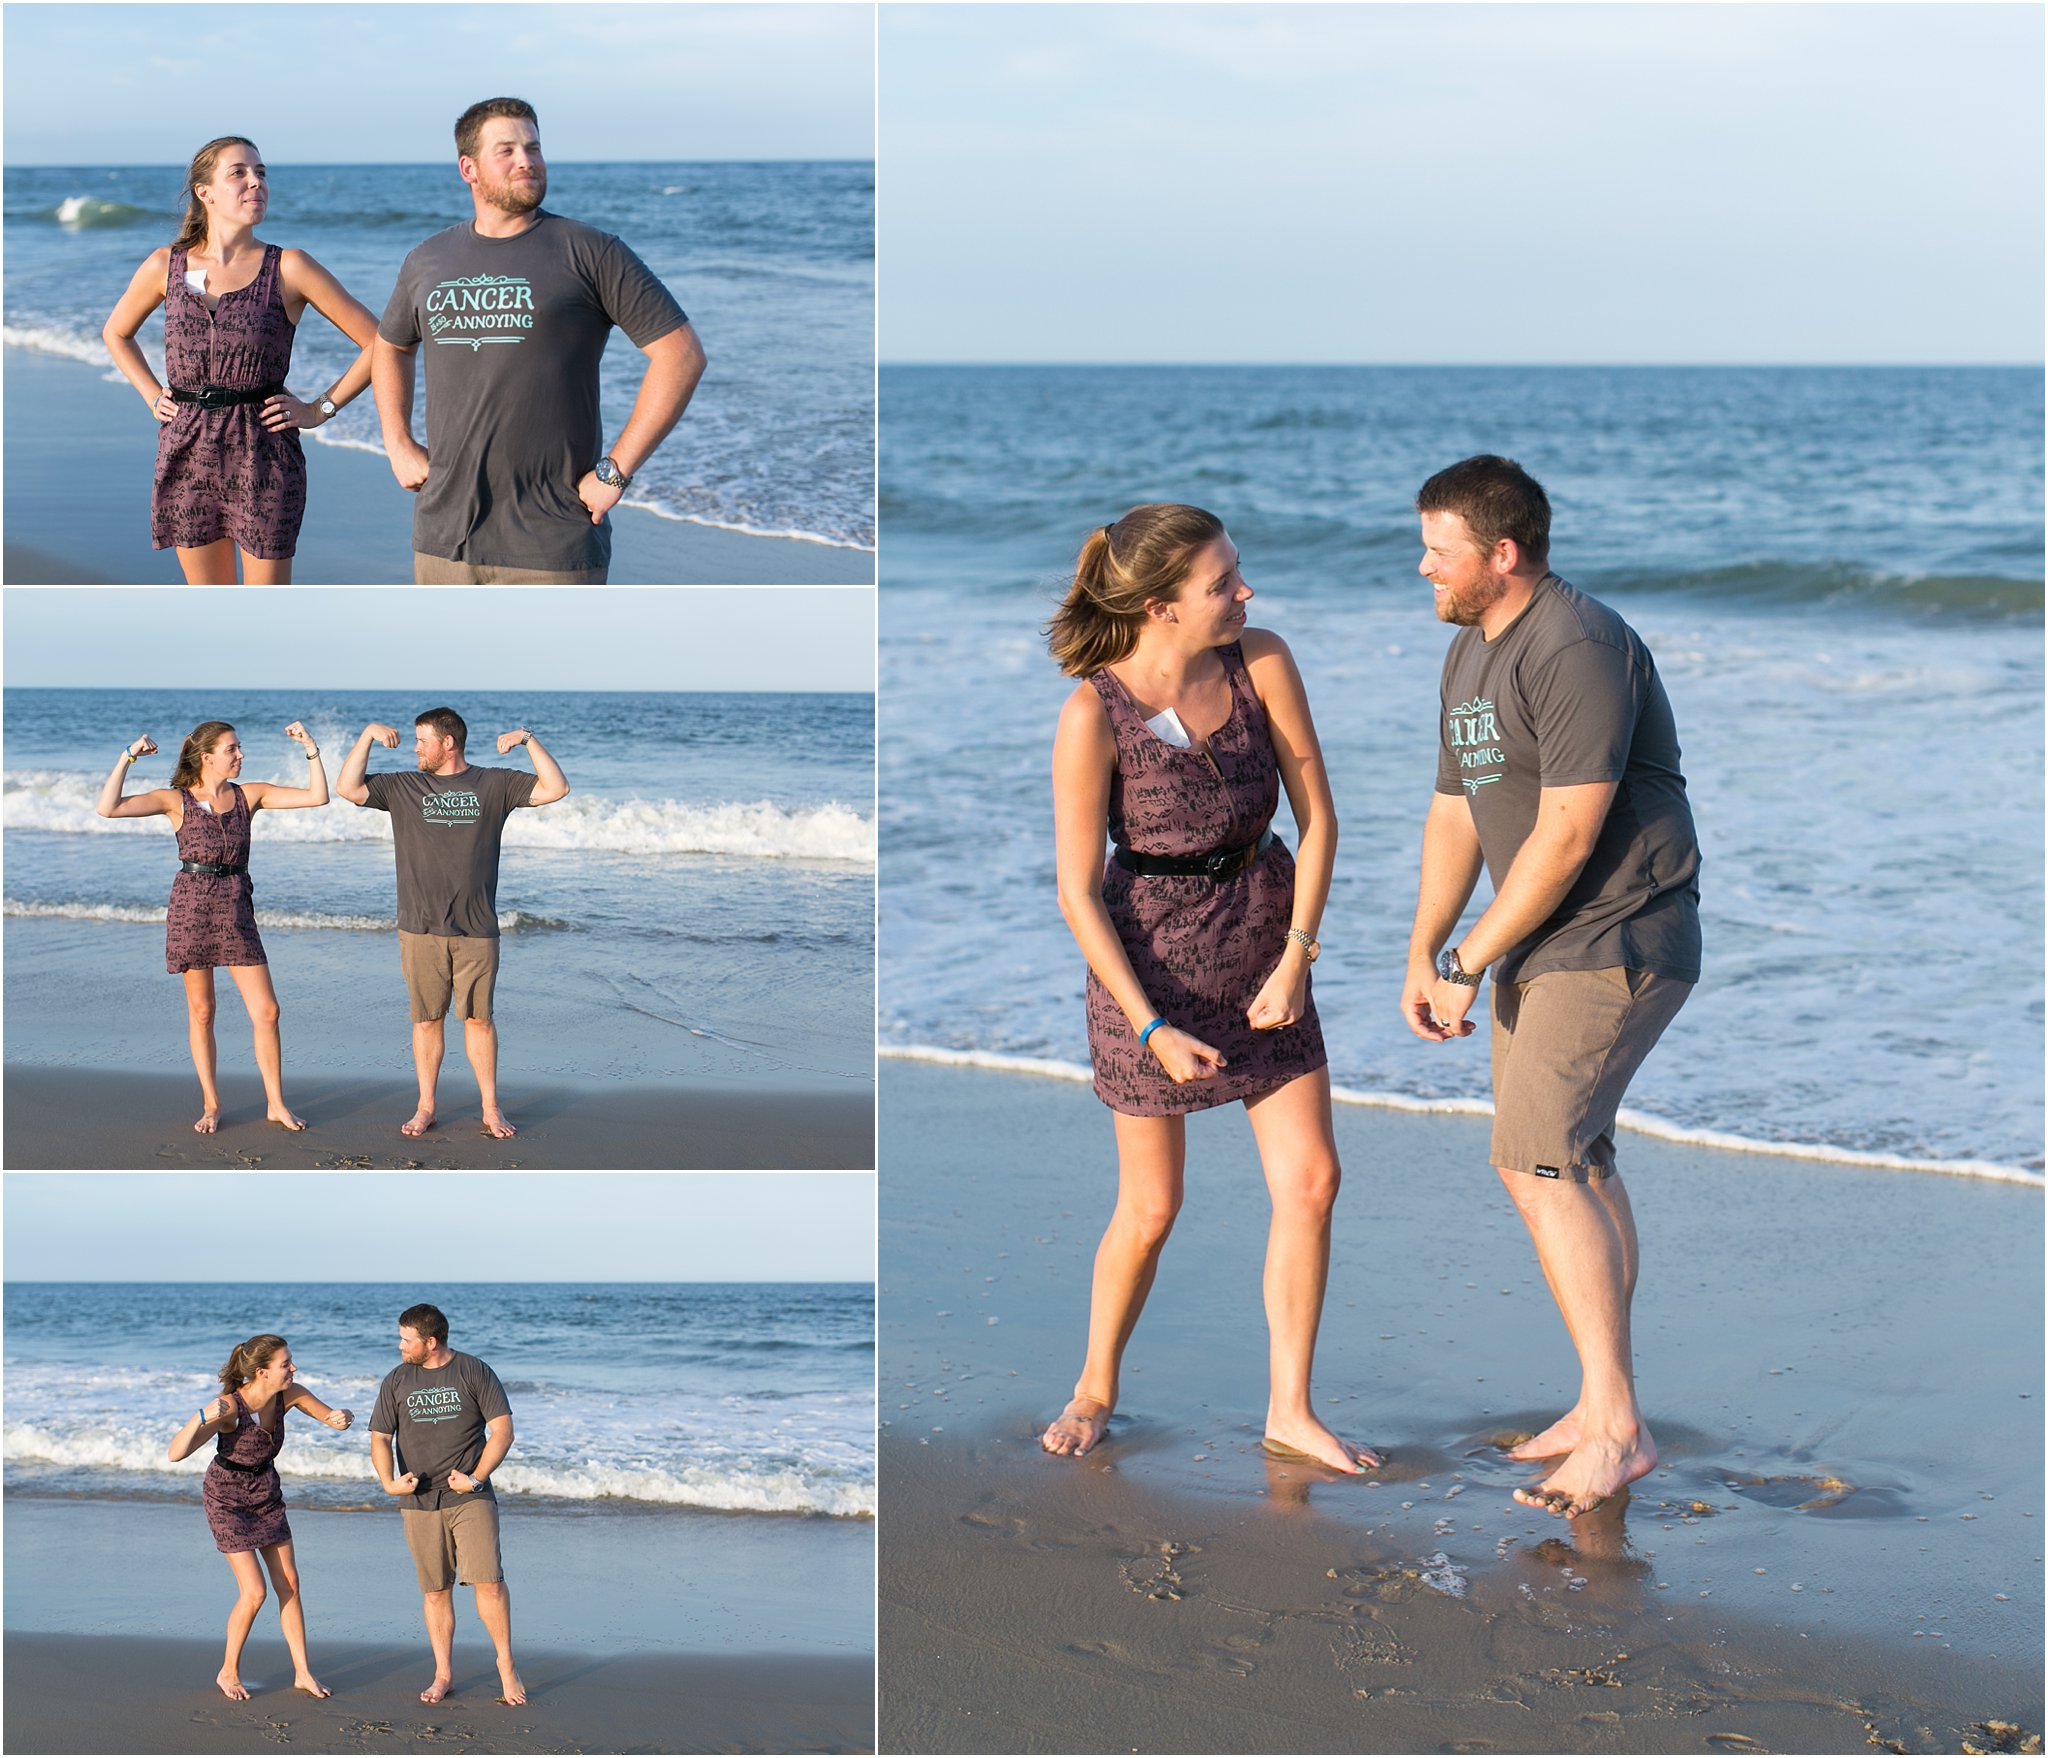 jessica_ryan_photography_breast_cancer_awareness_anniversary_session_susan_g_komen_fighting_cancer_virginia_virginia_beach_photograph_portraits_candid_authentic_portraits_virginia_2835